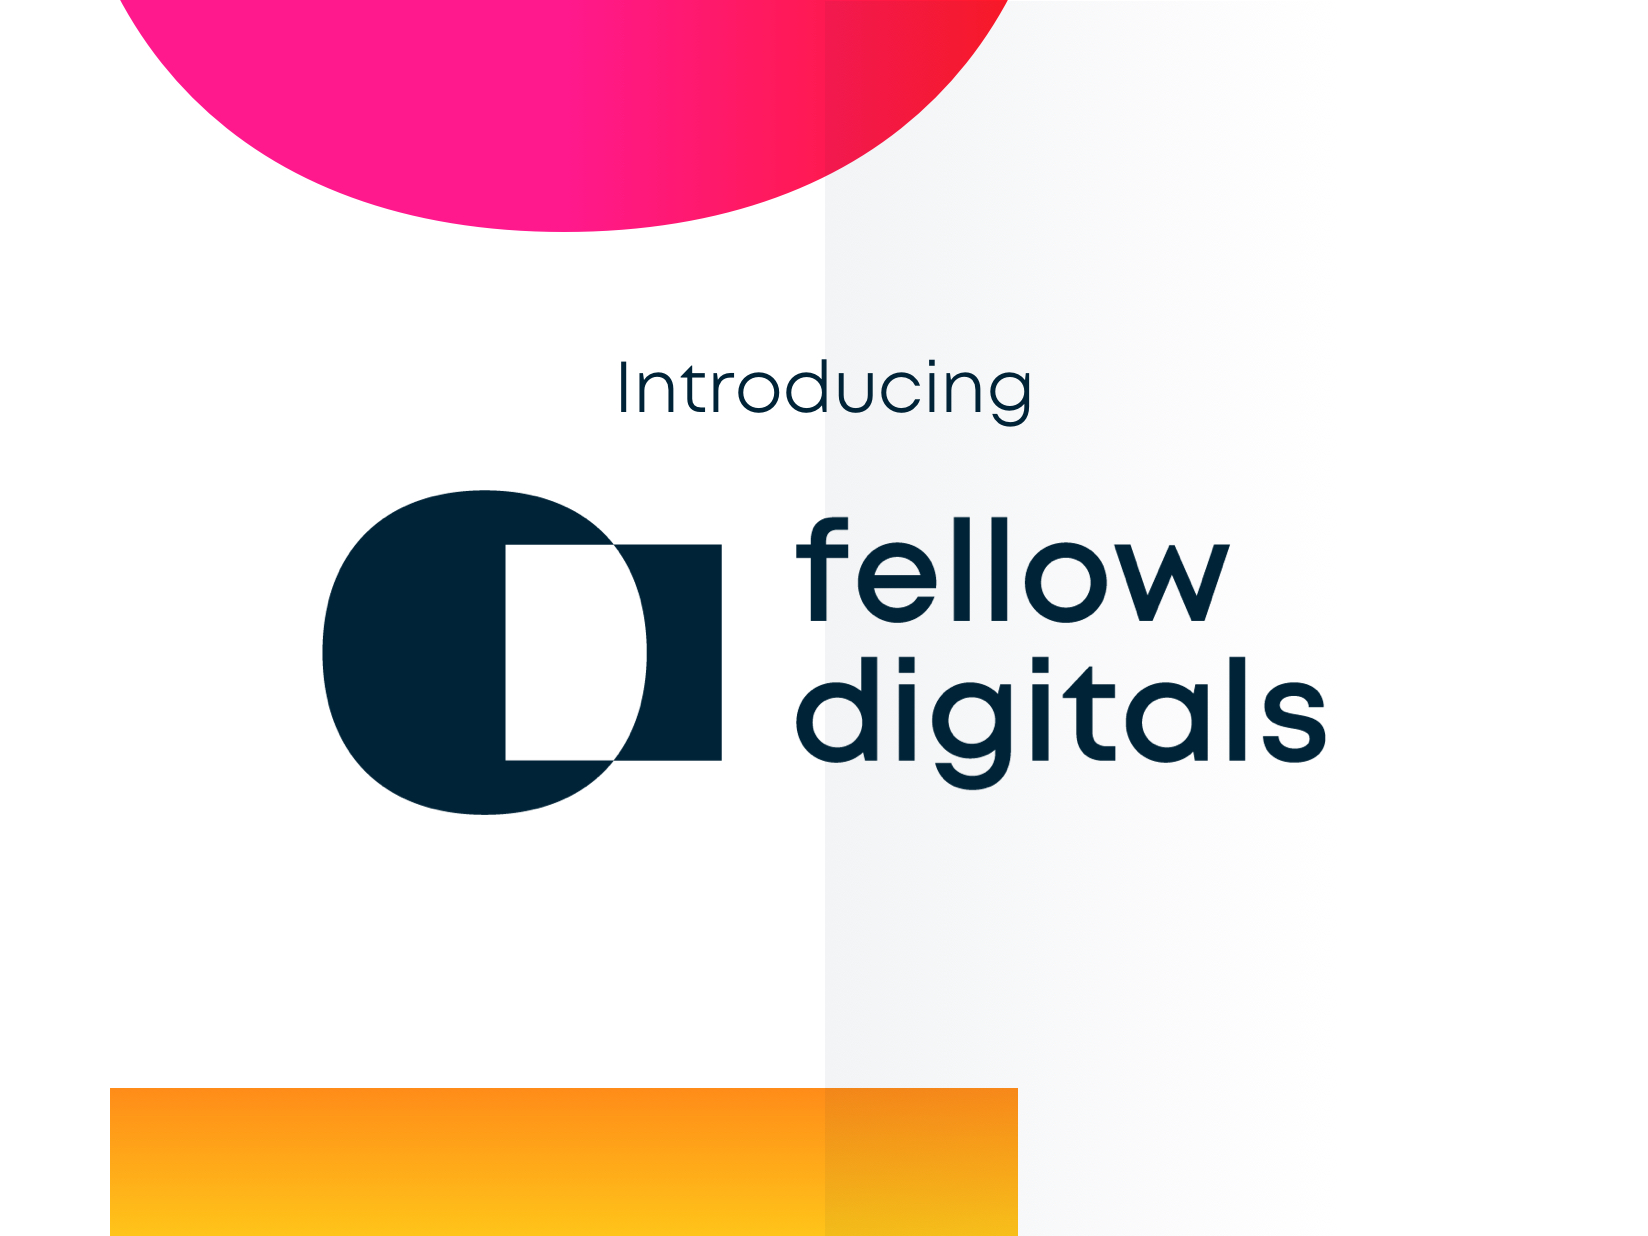 Introducing Fellow Digitals